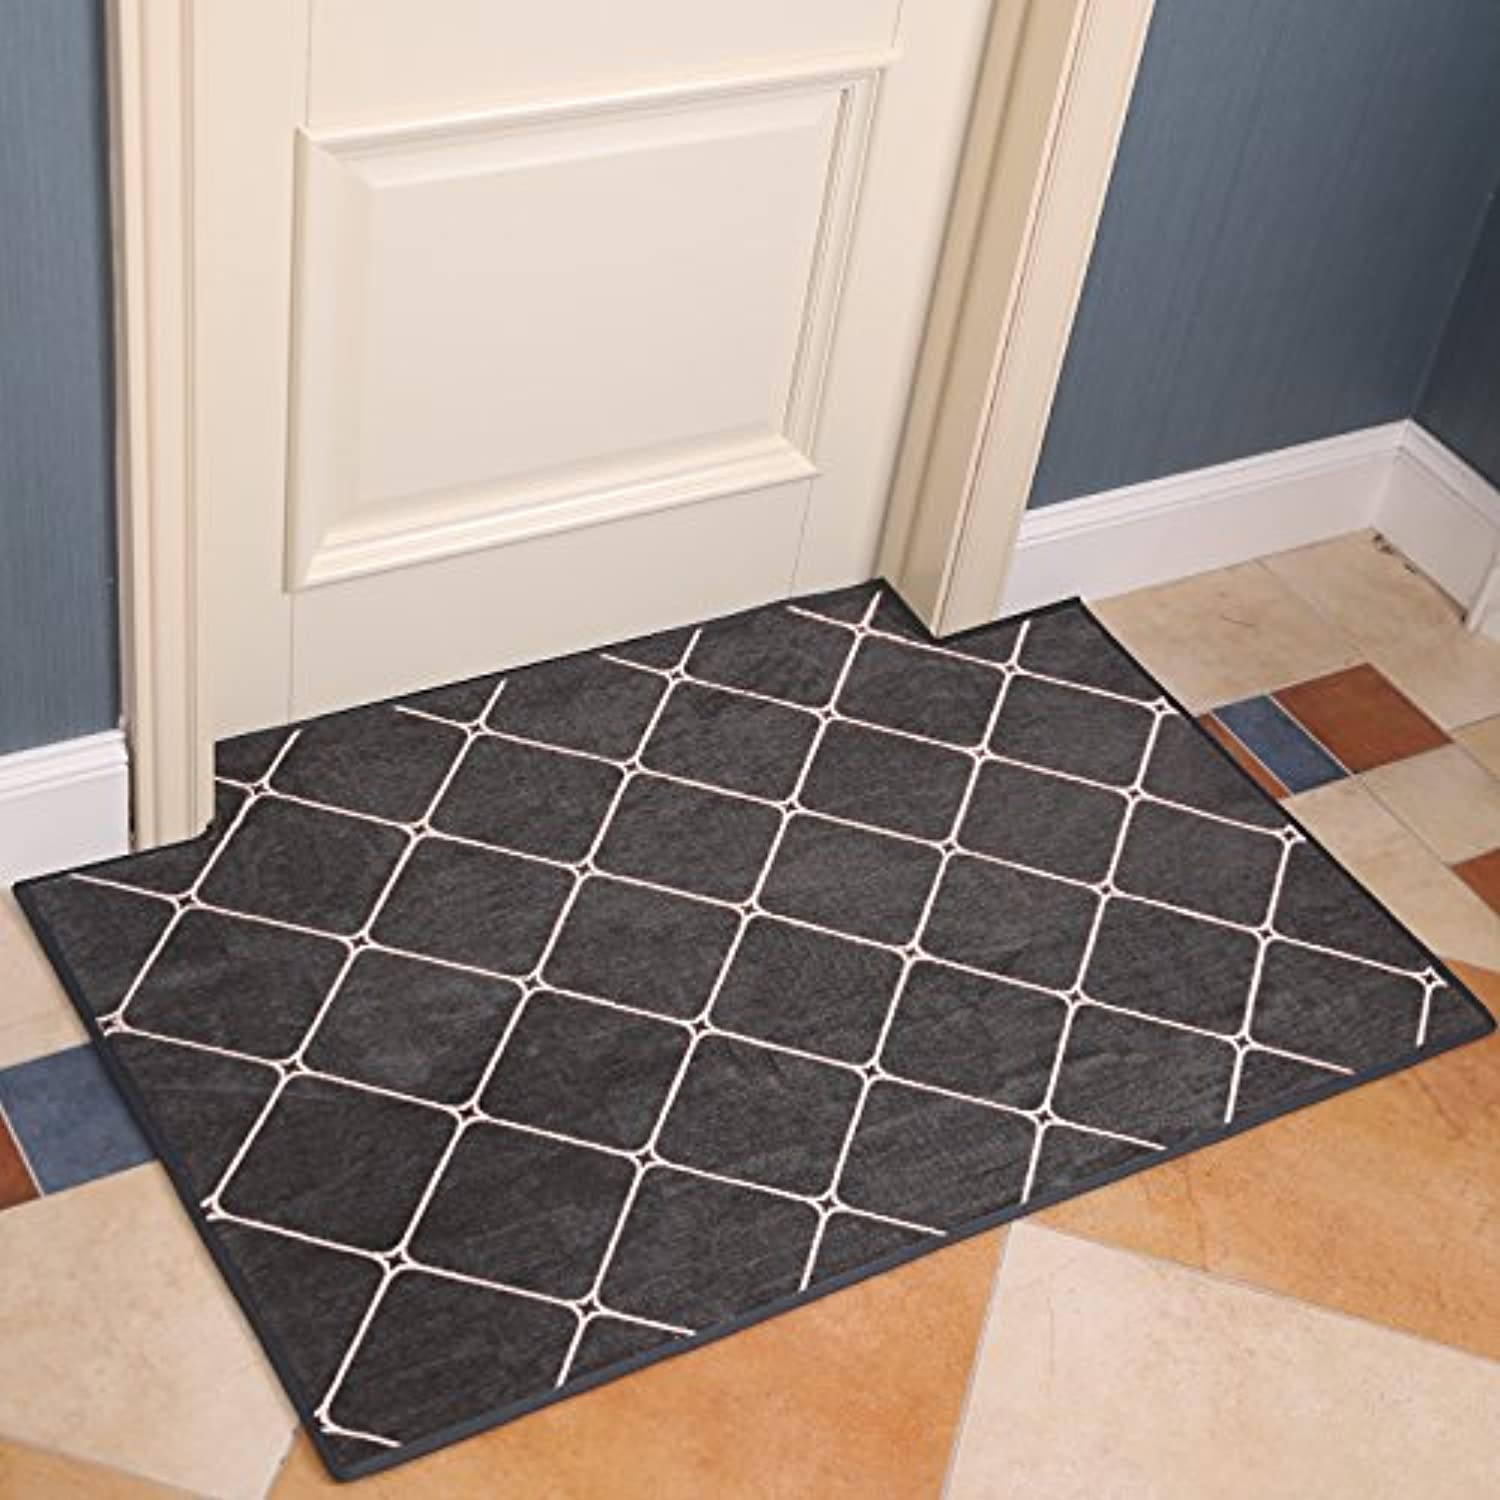 Door-to-Door Door-to-Door Doormat Living Room mat Bedroom Anti slip-D-100x150cm(39x59inch)